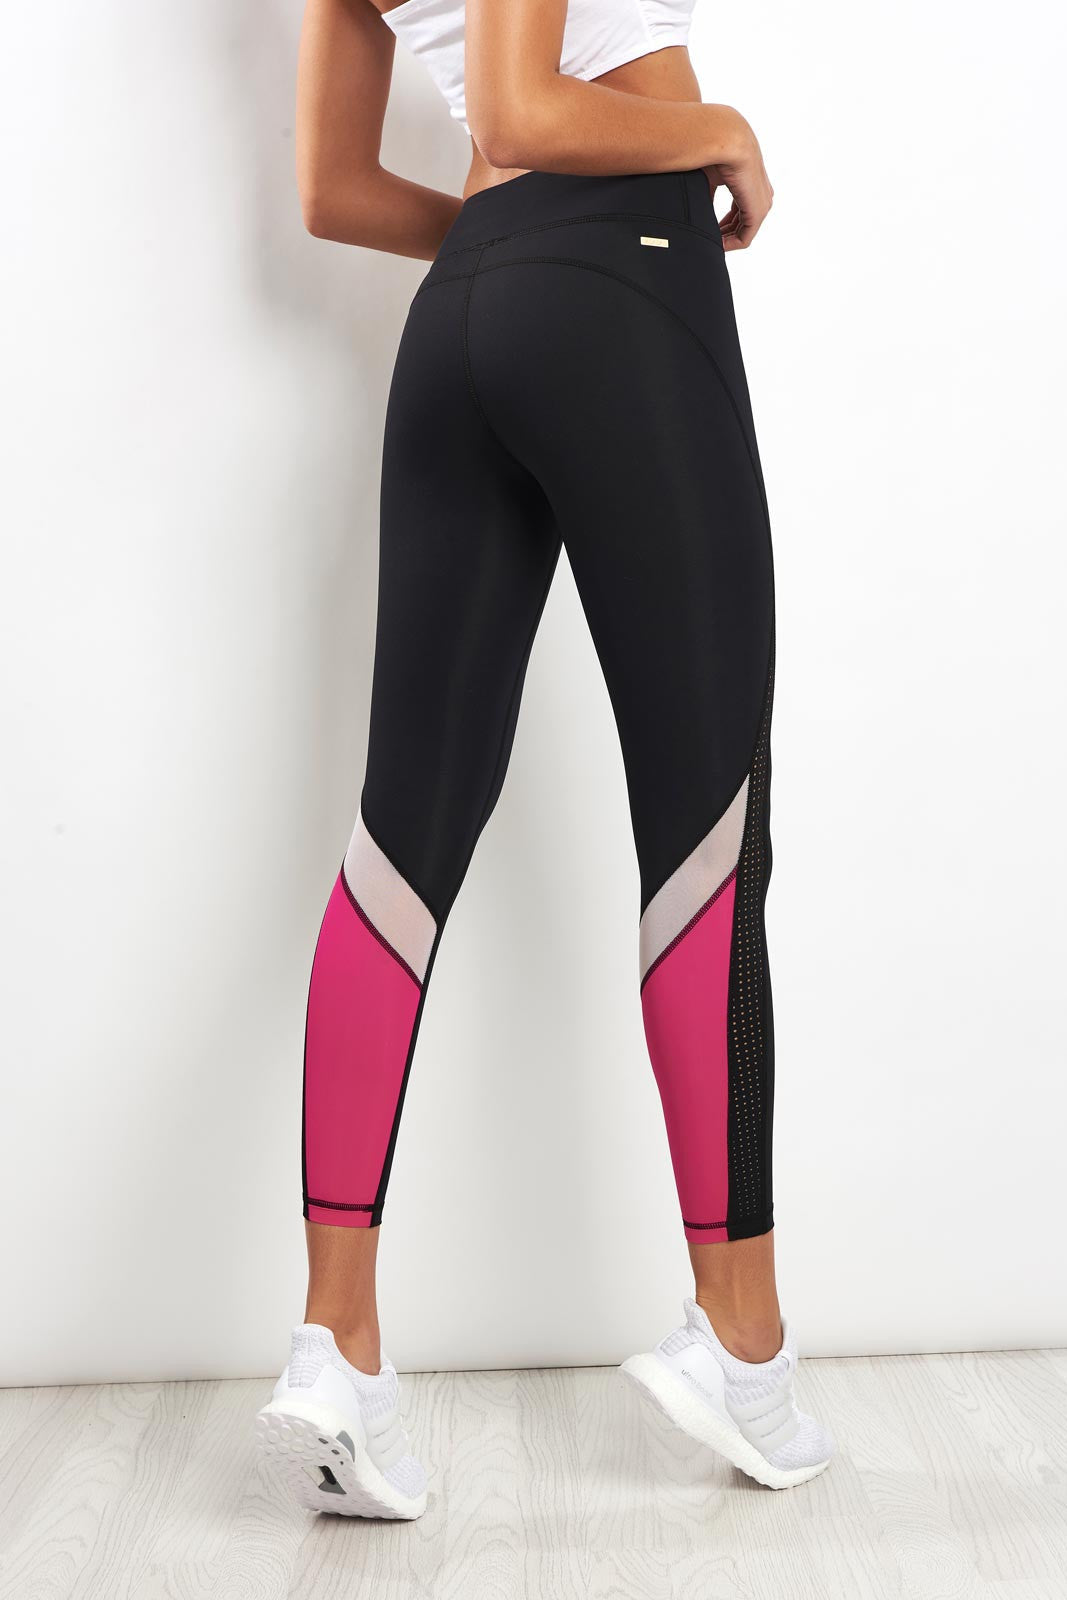 Alala Heroine Tight - Black/White/Hibiscus image 2 - The Sports Edit